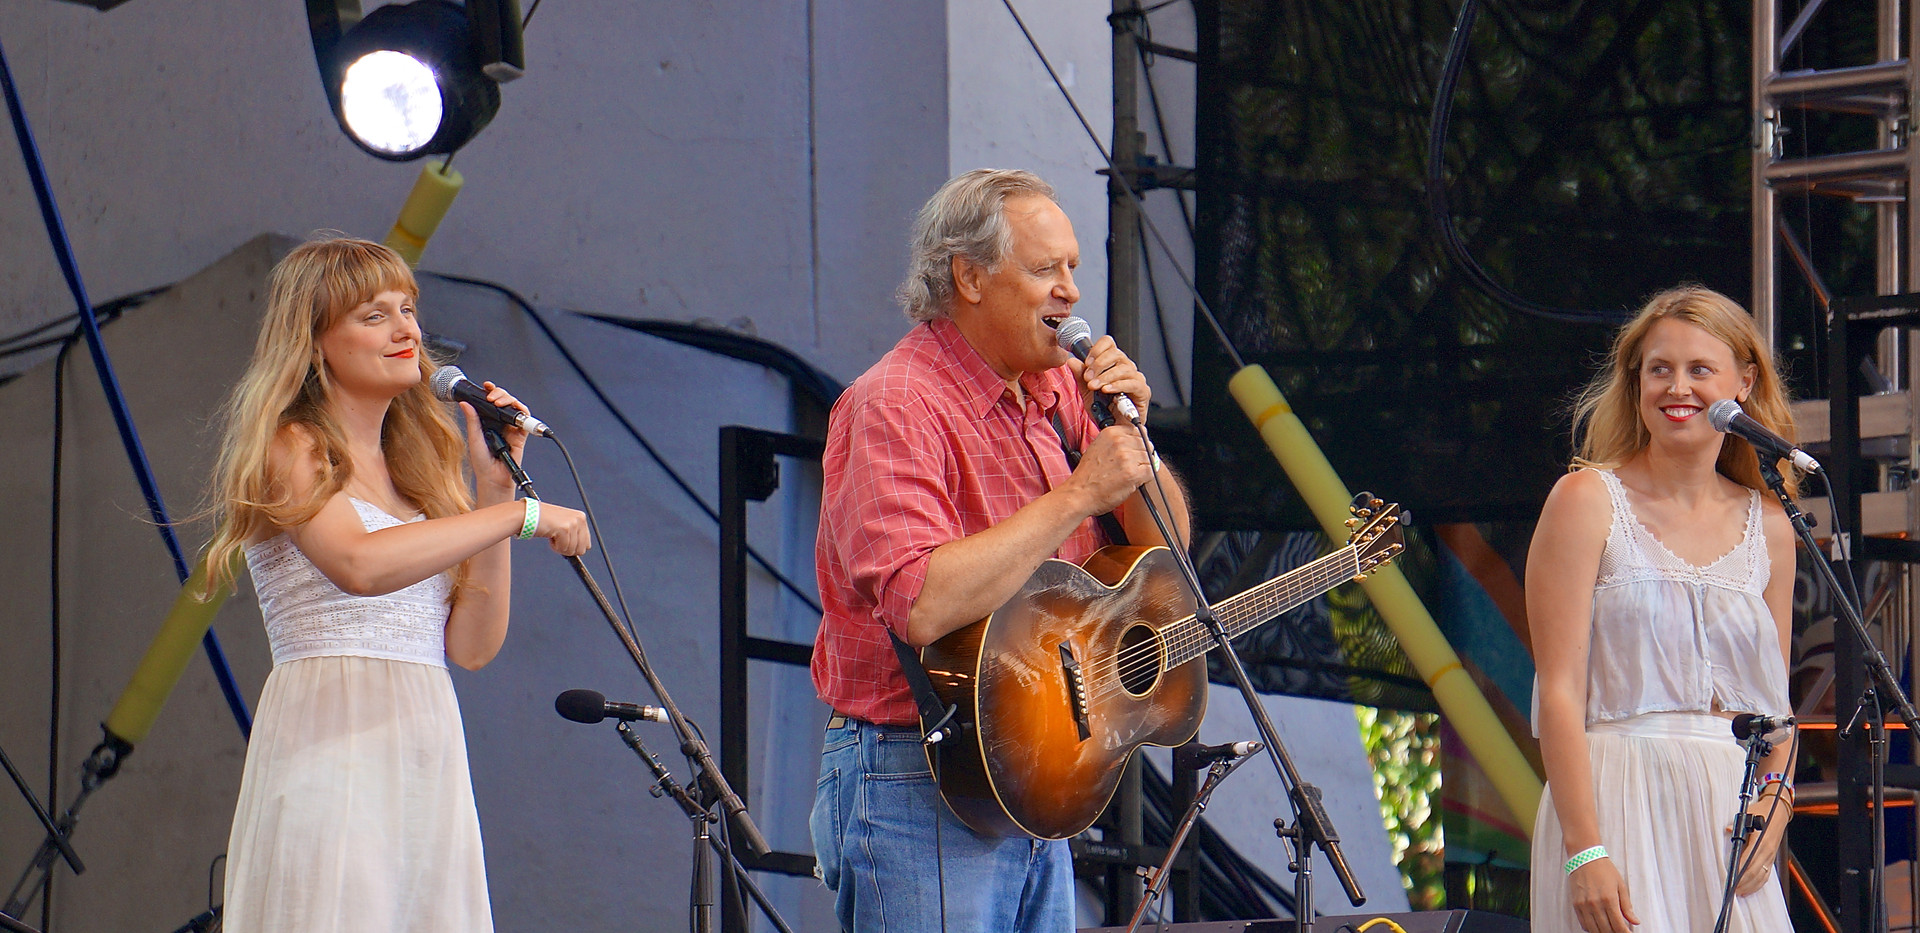 July 22, Tom Chapin with Chapin Sisters